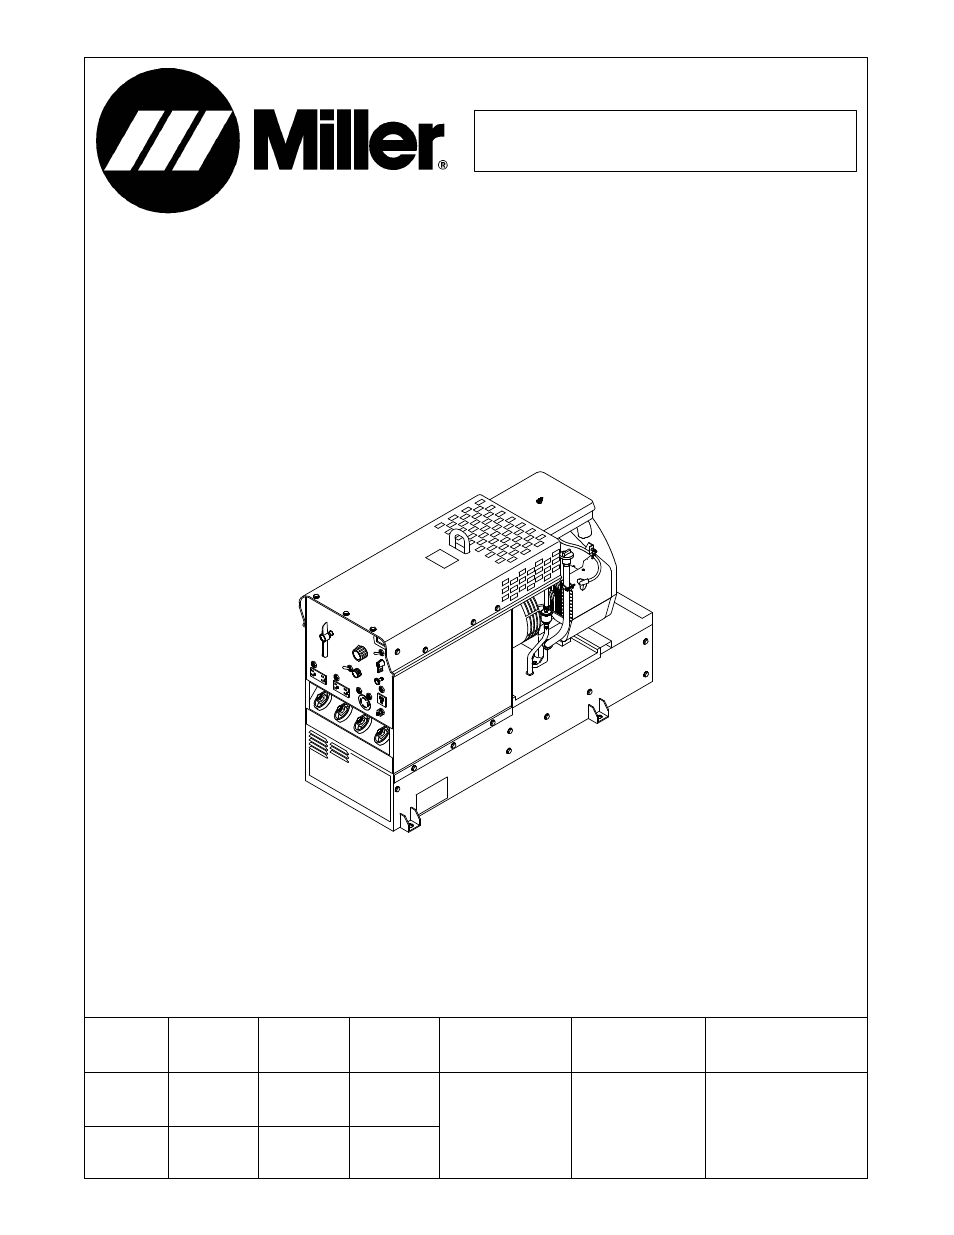 Miller Bobcat 225 Parts Diagram. Wiring. Wiring Diagram Images